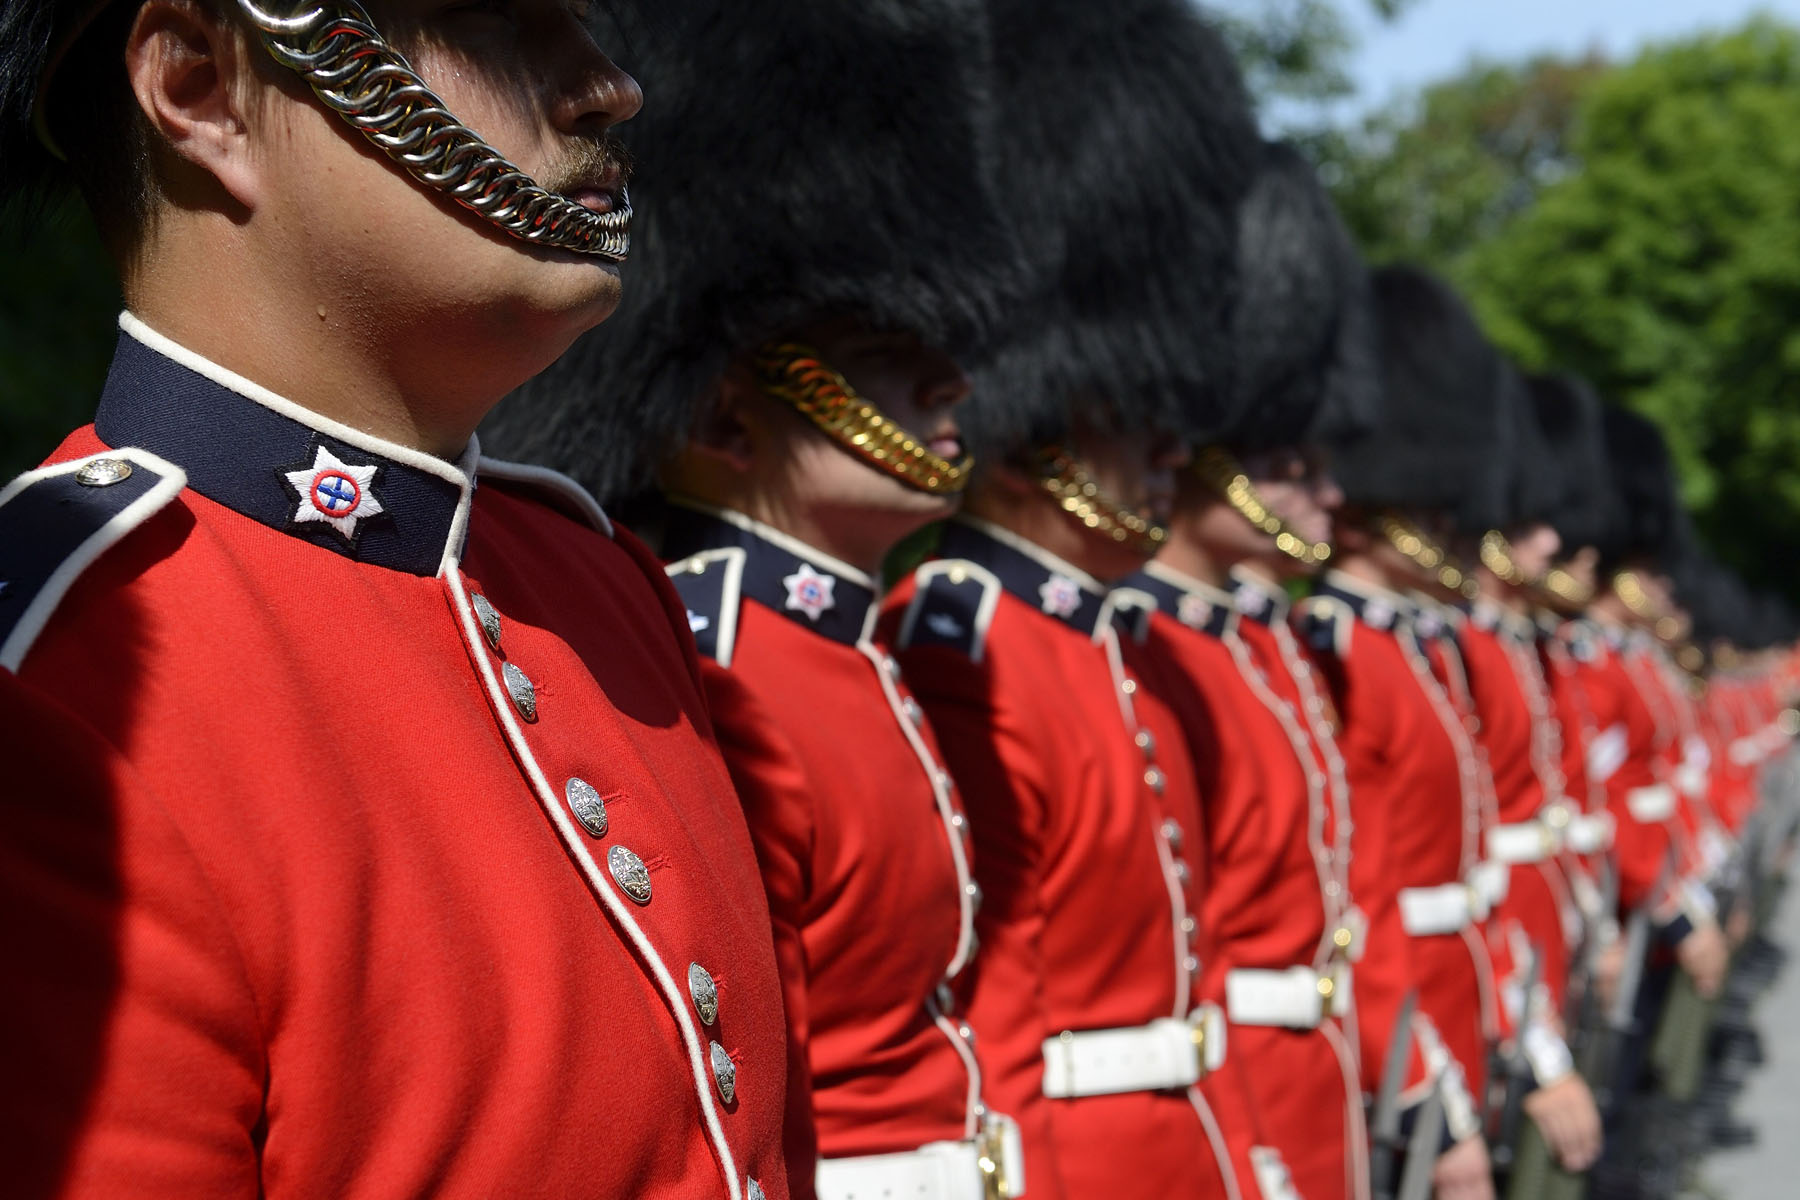 When required, the Ceremonial Guard mounts guards of honour for visiting dignitaries.